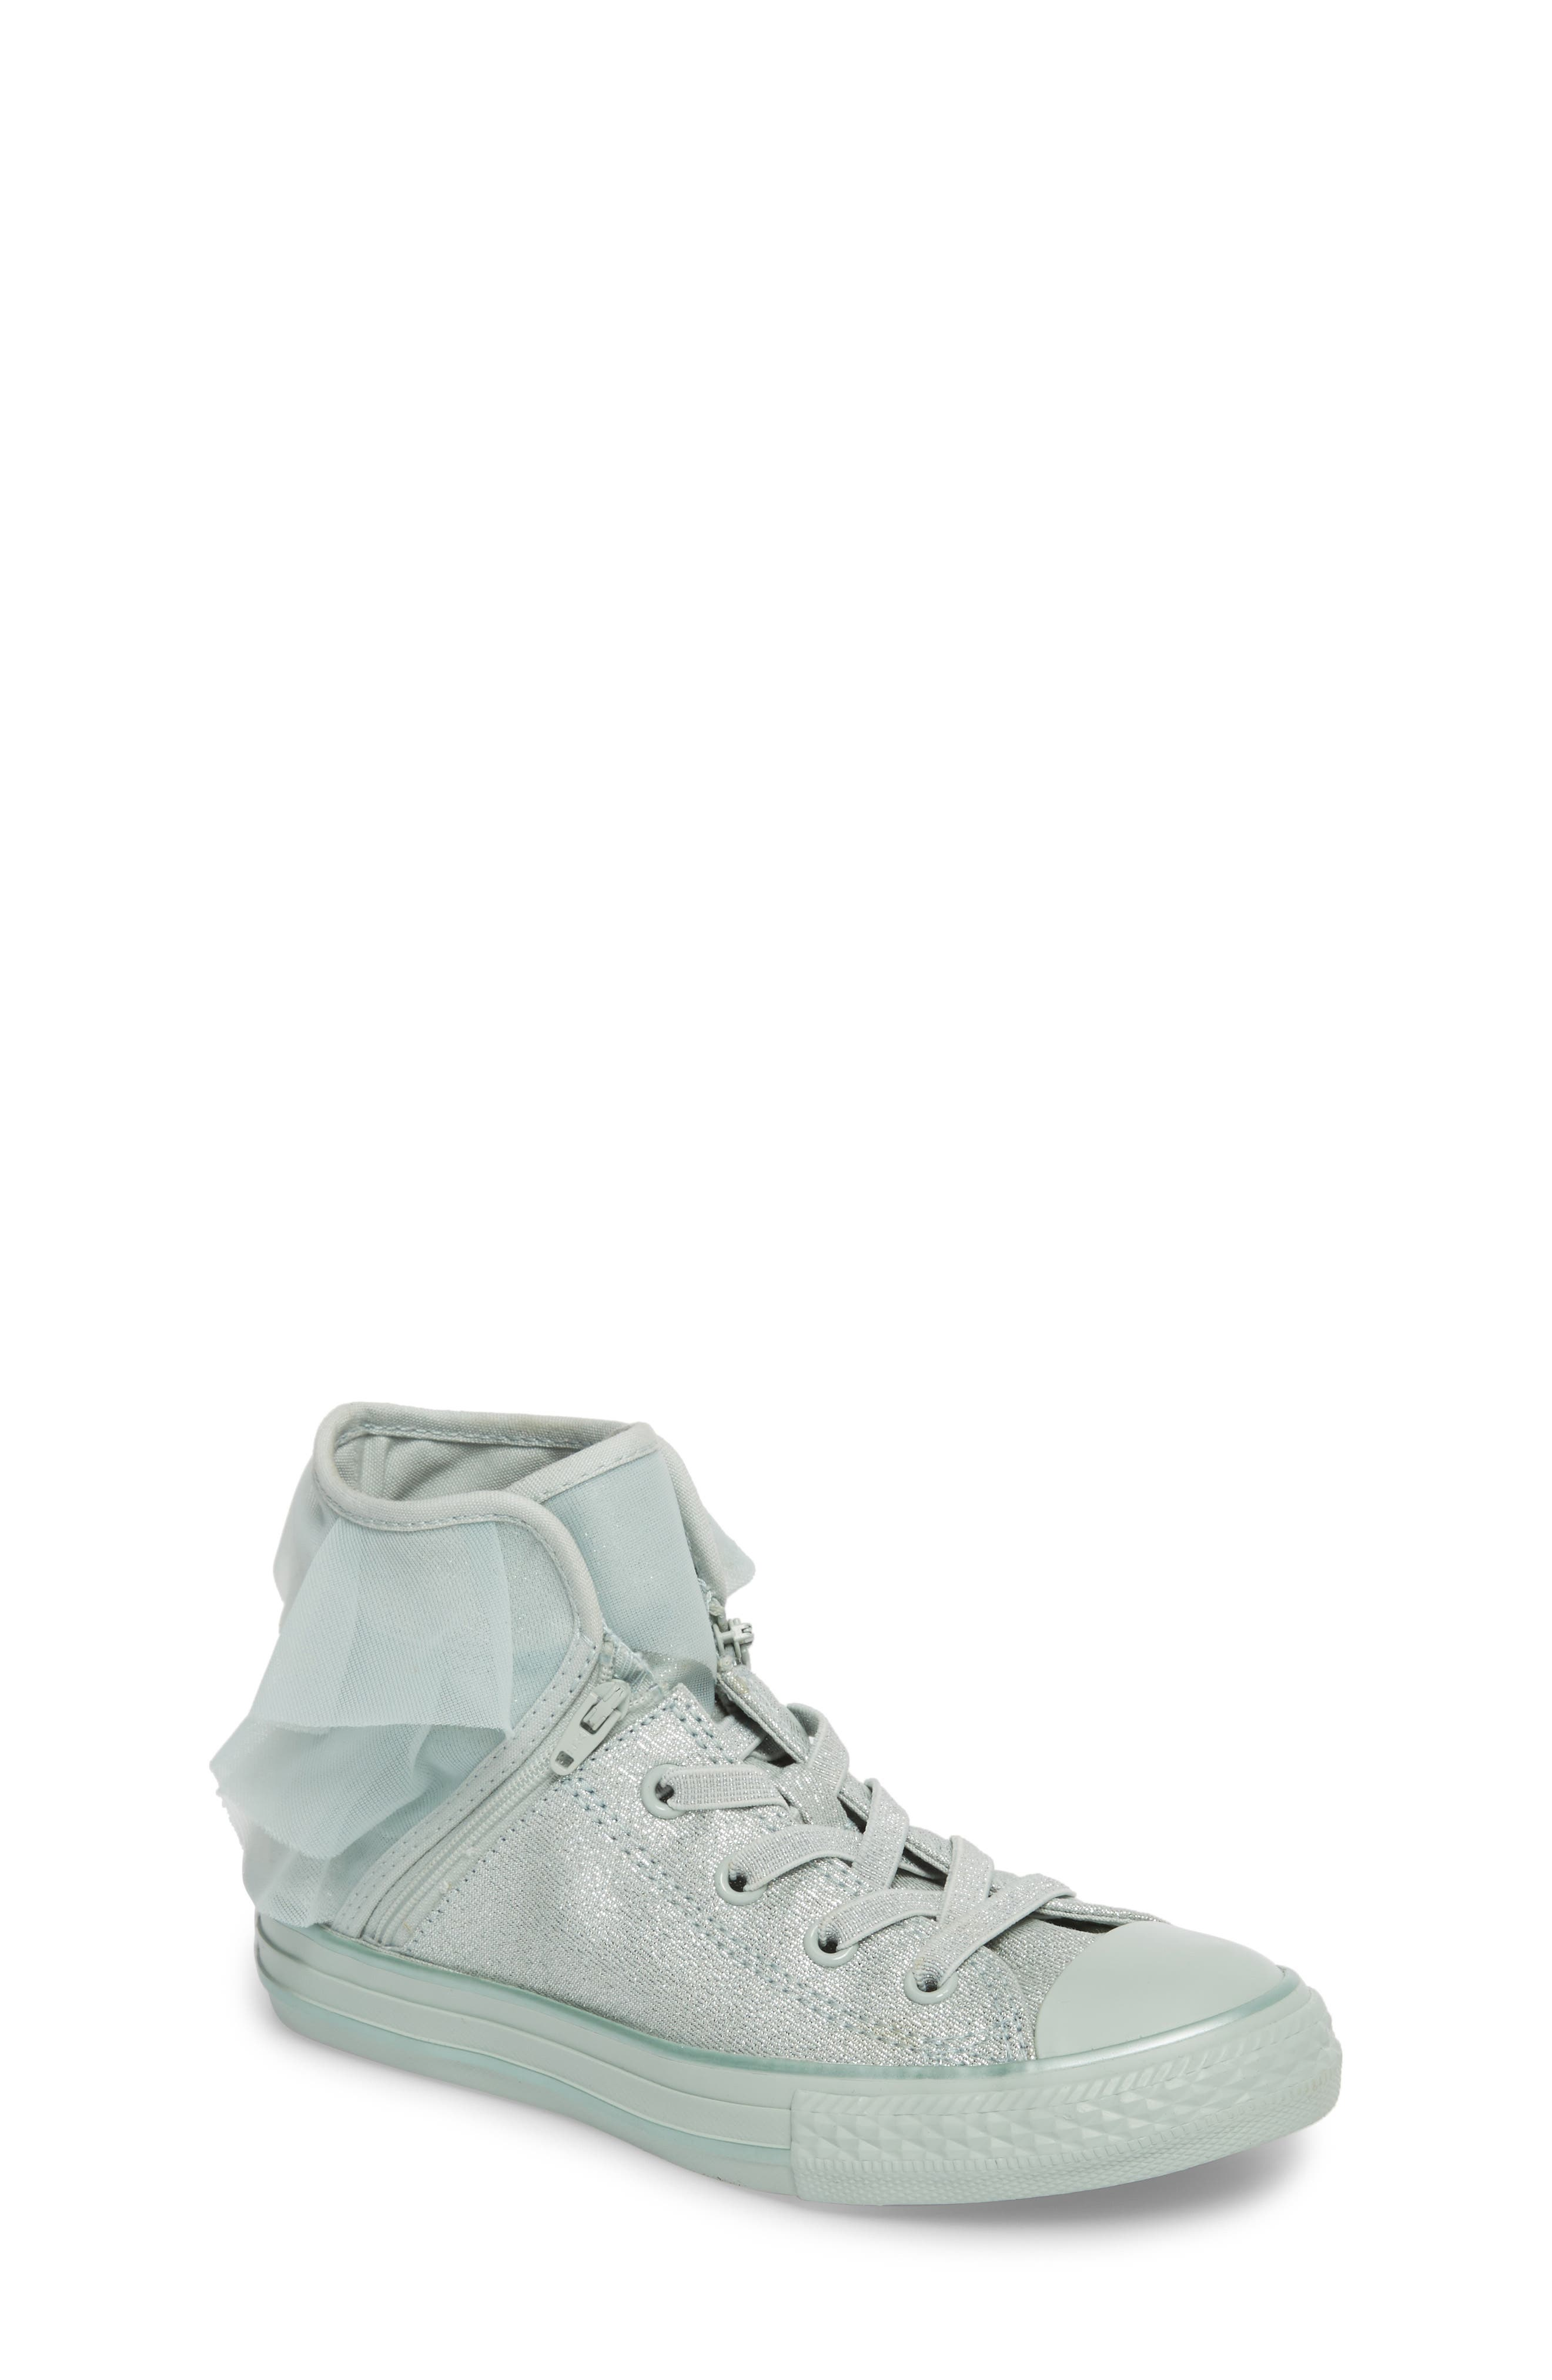 All Star<sup>®</sup> Mono Shine Party High Top Sneaker,                             Main thumbnail 1, color,